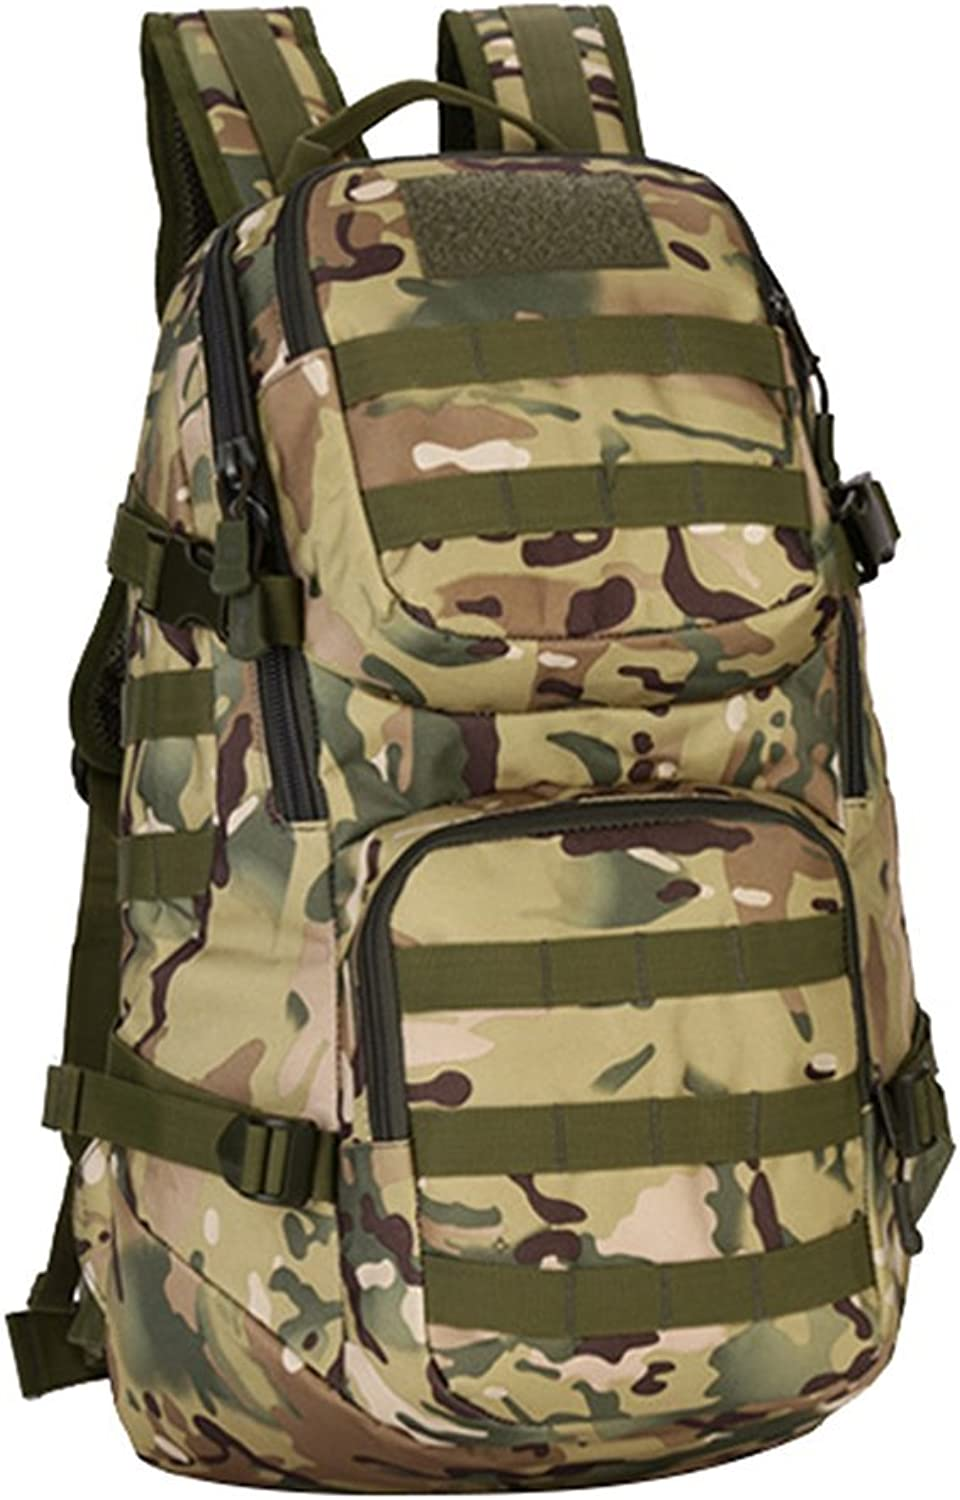 JINying Heavy Duty Lightweight Expandable 35L Outdoor Military Tactical MOLLE Assault Backpack